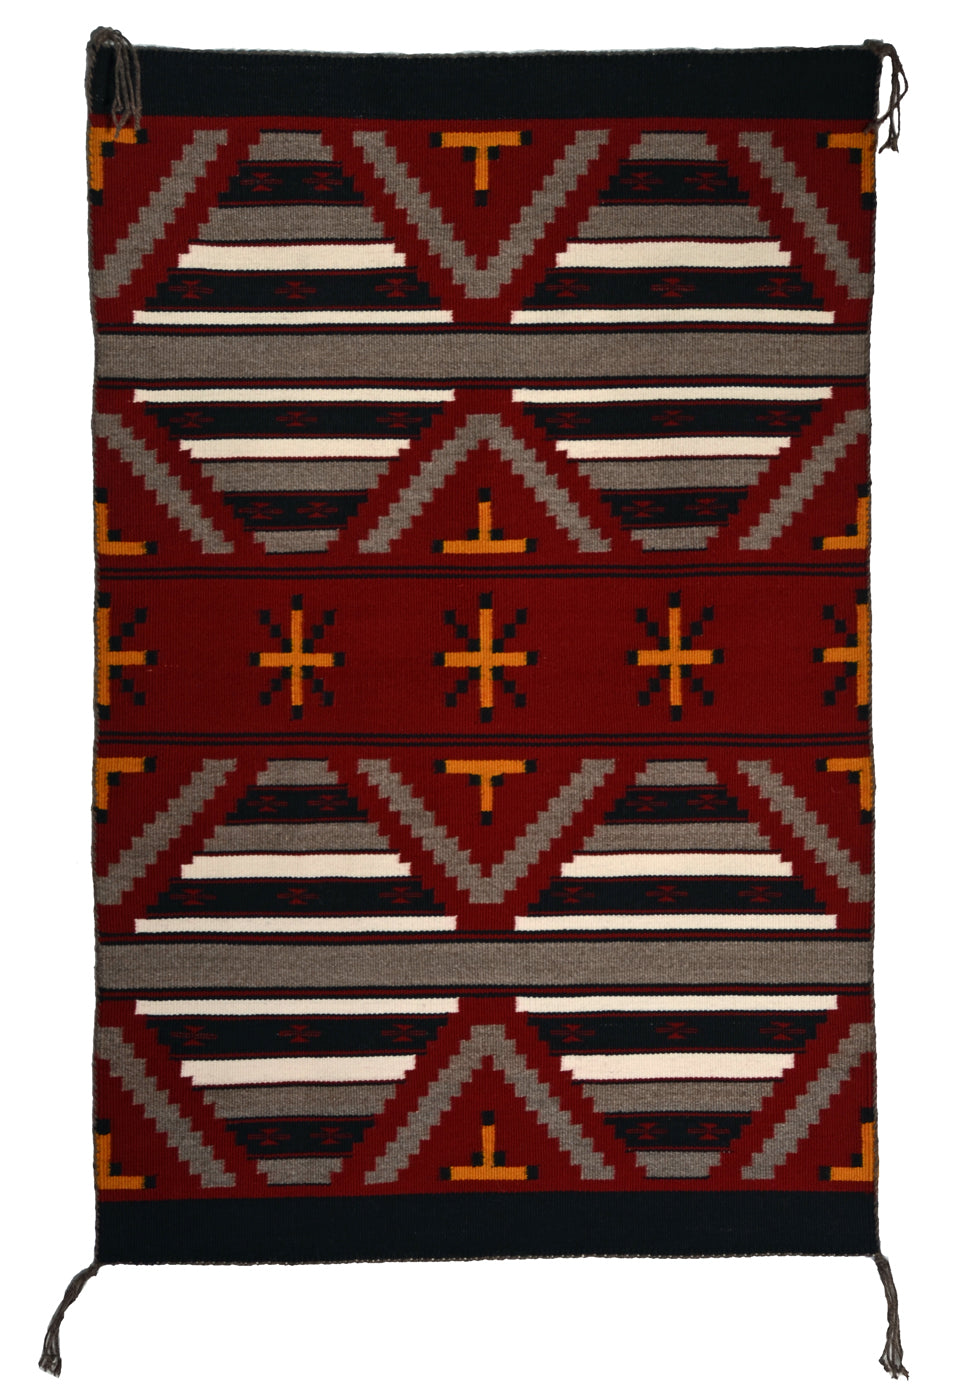 Navajo Mini-Serape : American Indian Rug : Ruby Watchman : 3399